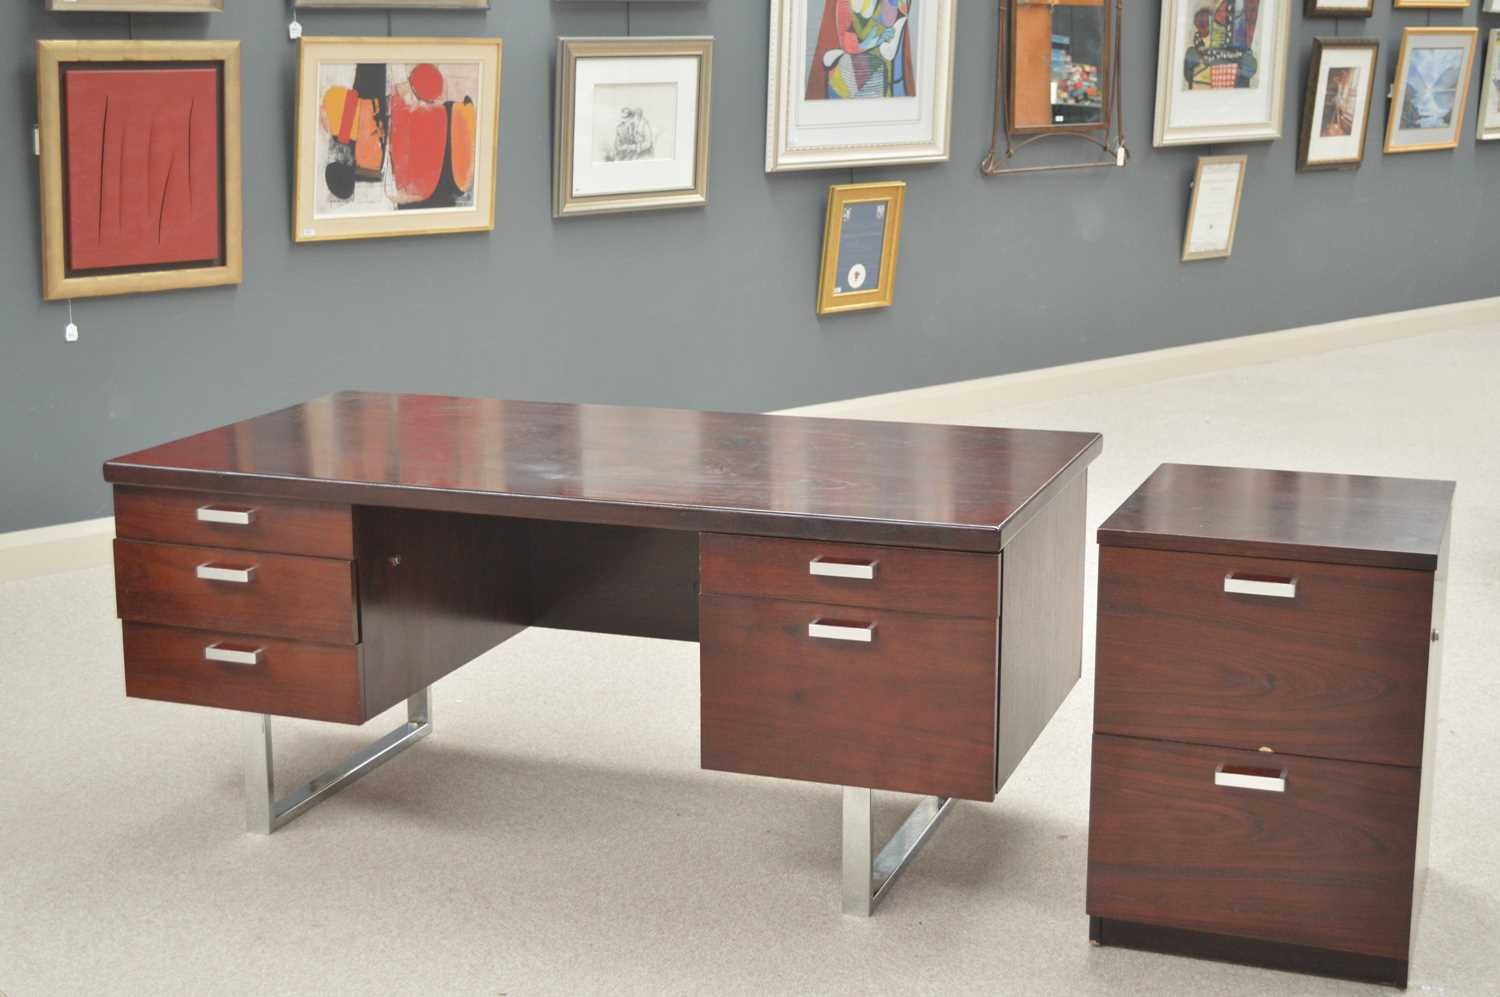 Trevor Chinn for Gordon Russell: a rosewood and chromed metal pedestal desk and filing cupboard.